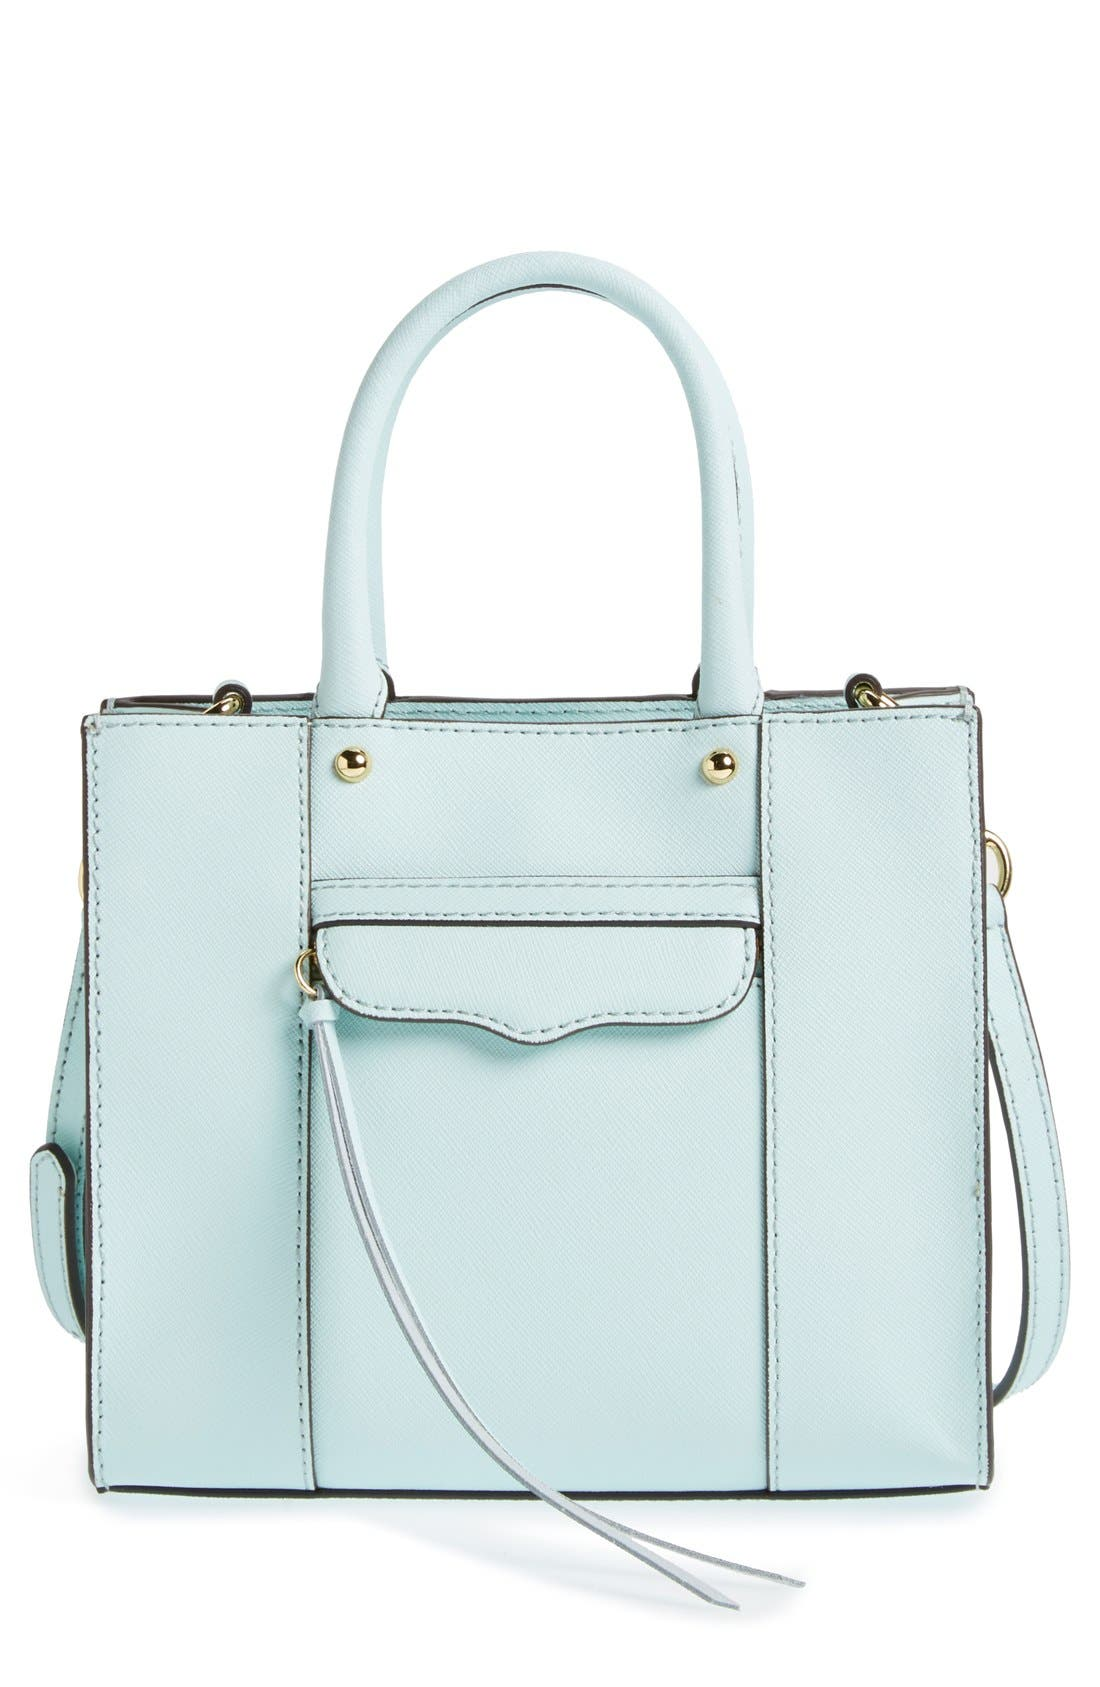 'Mini MAB Tote' Crossbody Bag,                             Main thumbnail 28, color,